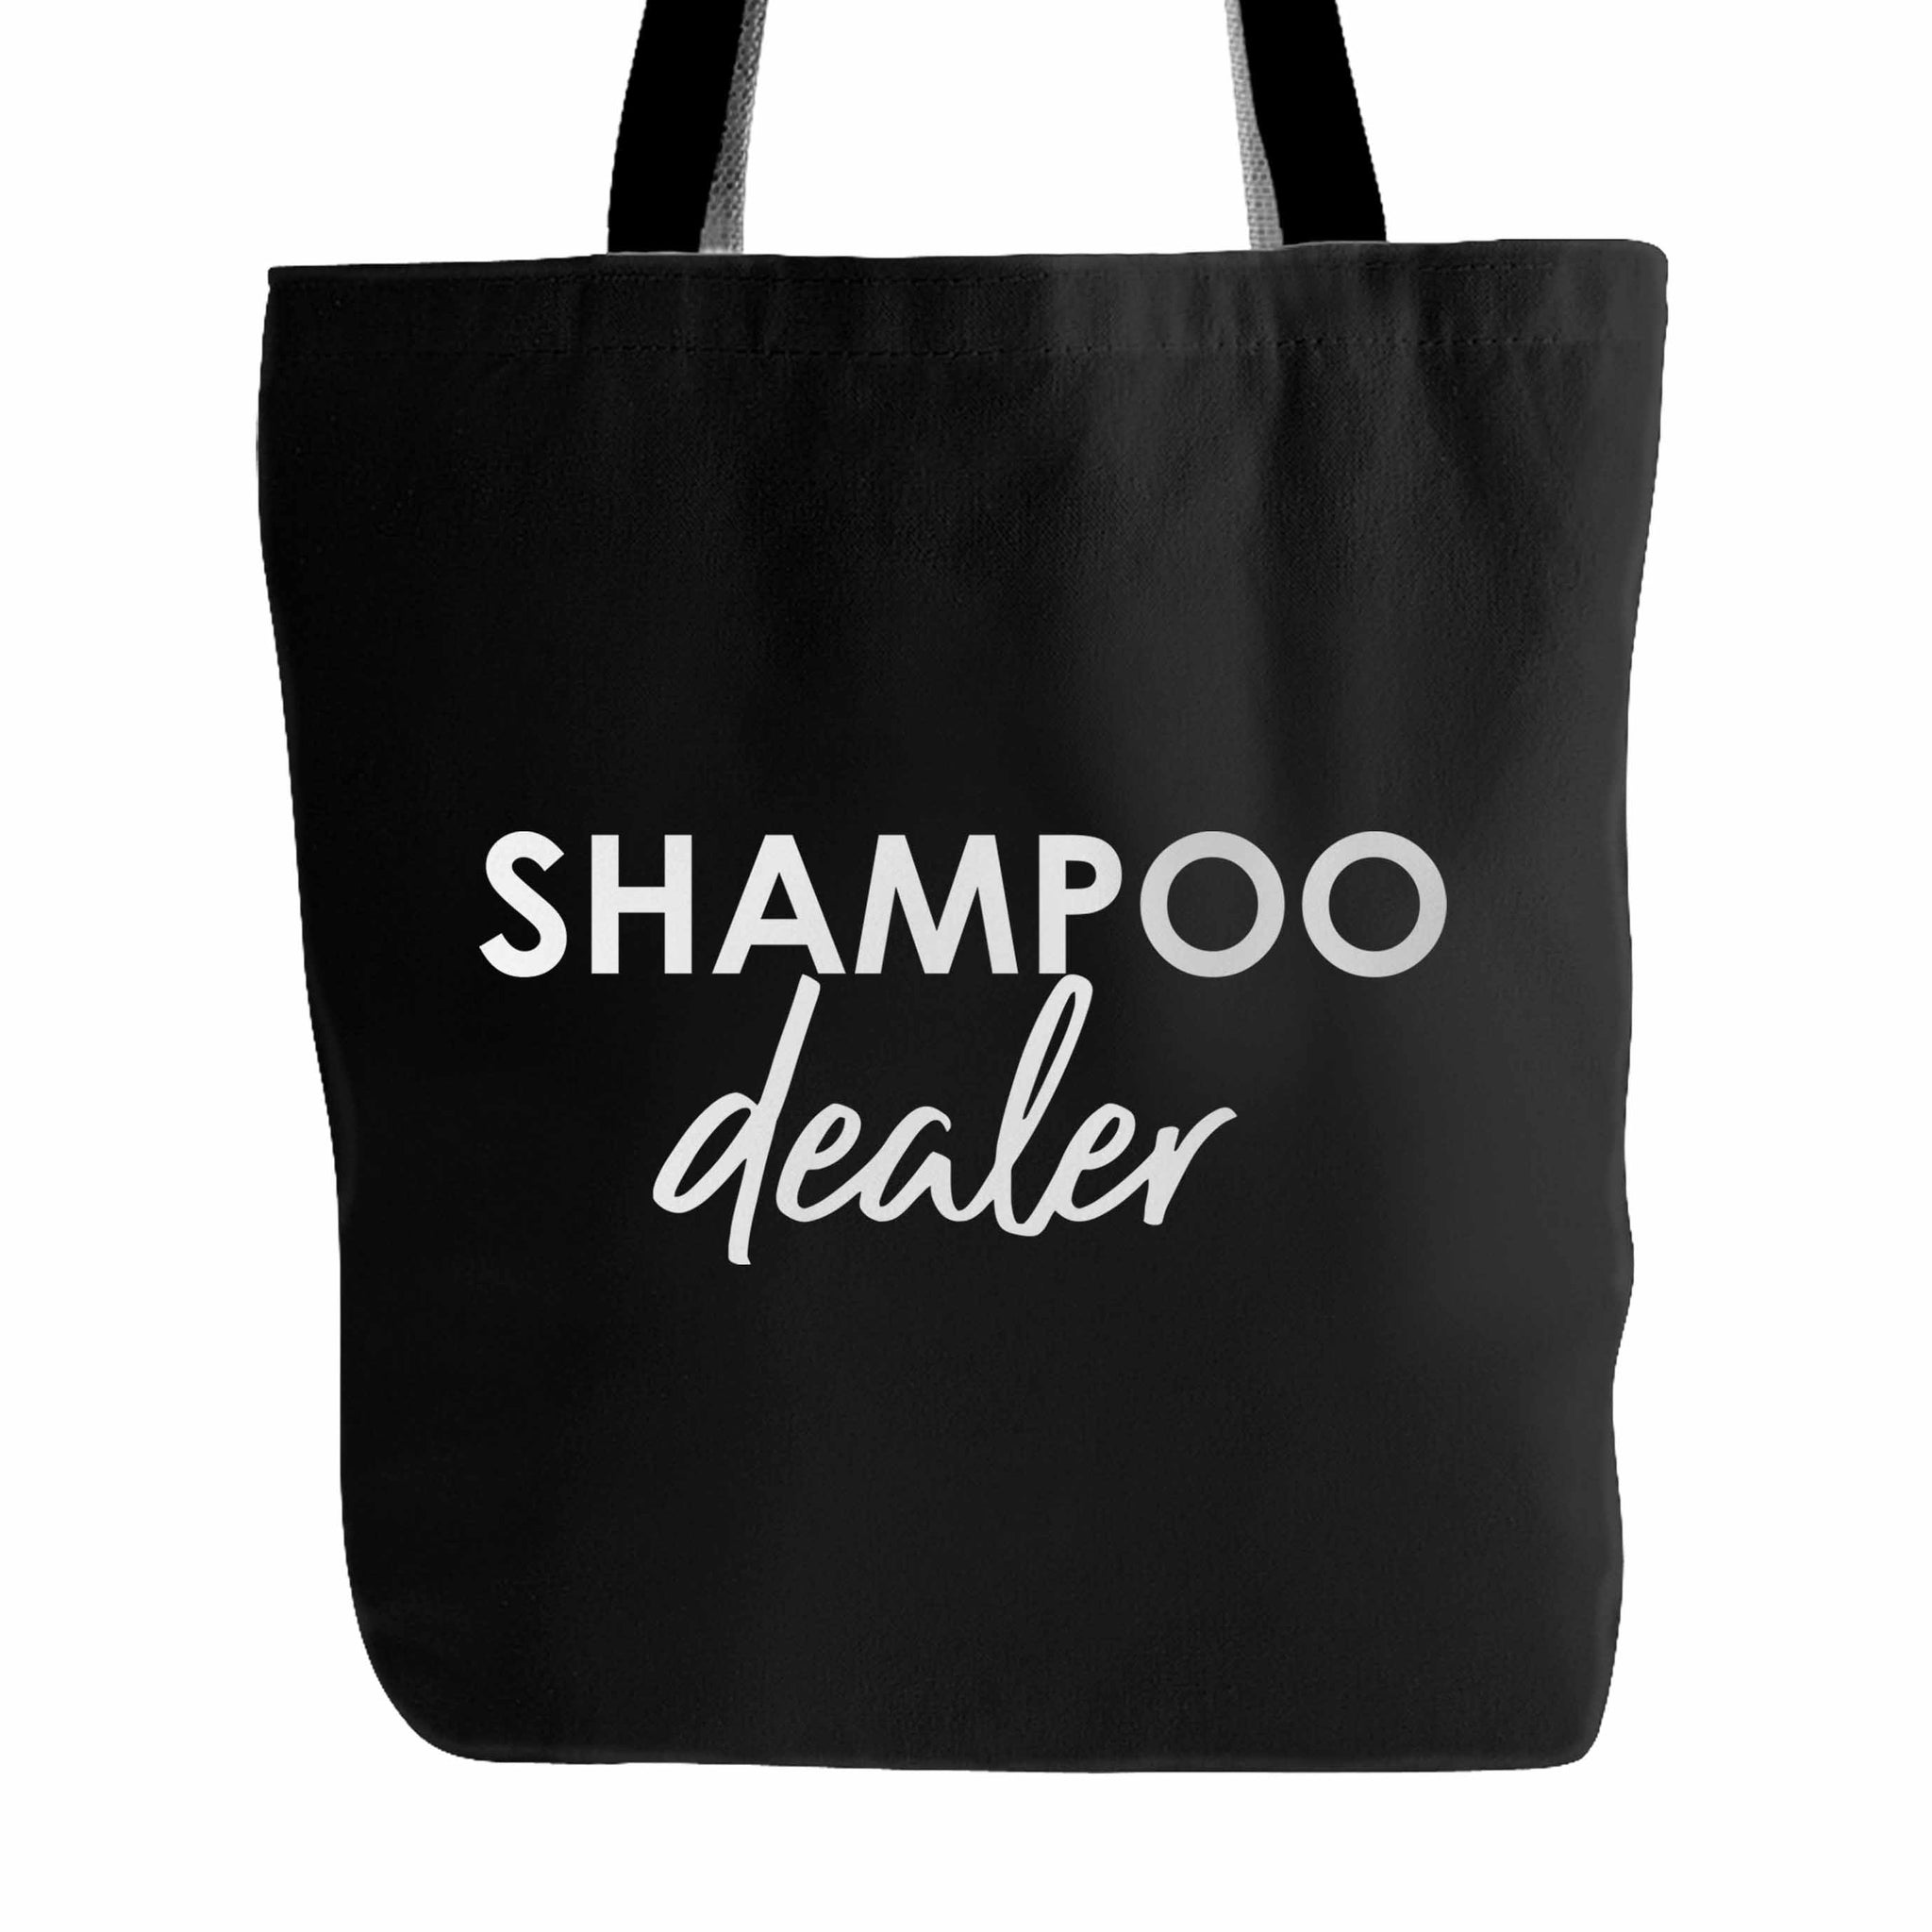 Shampoo Dealer Tote Bag